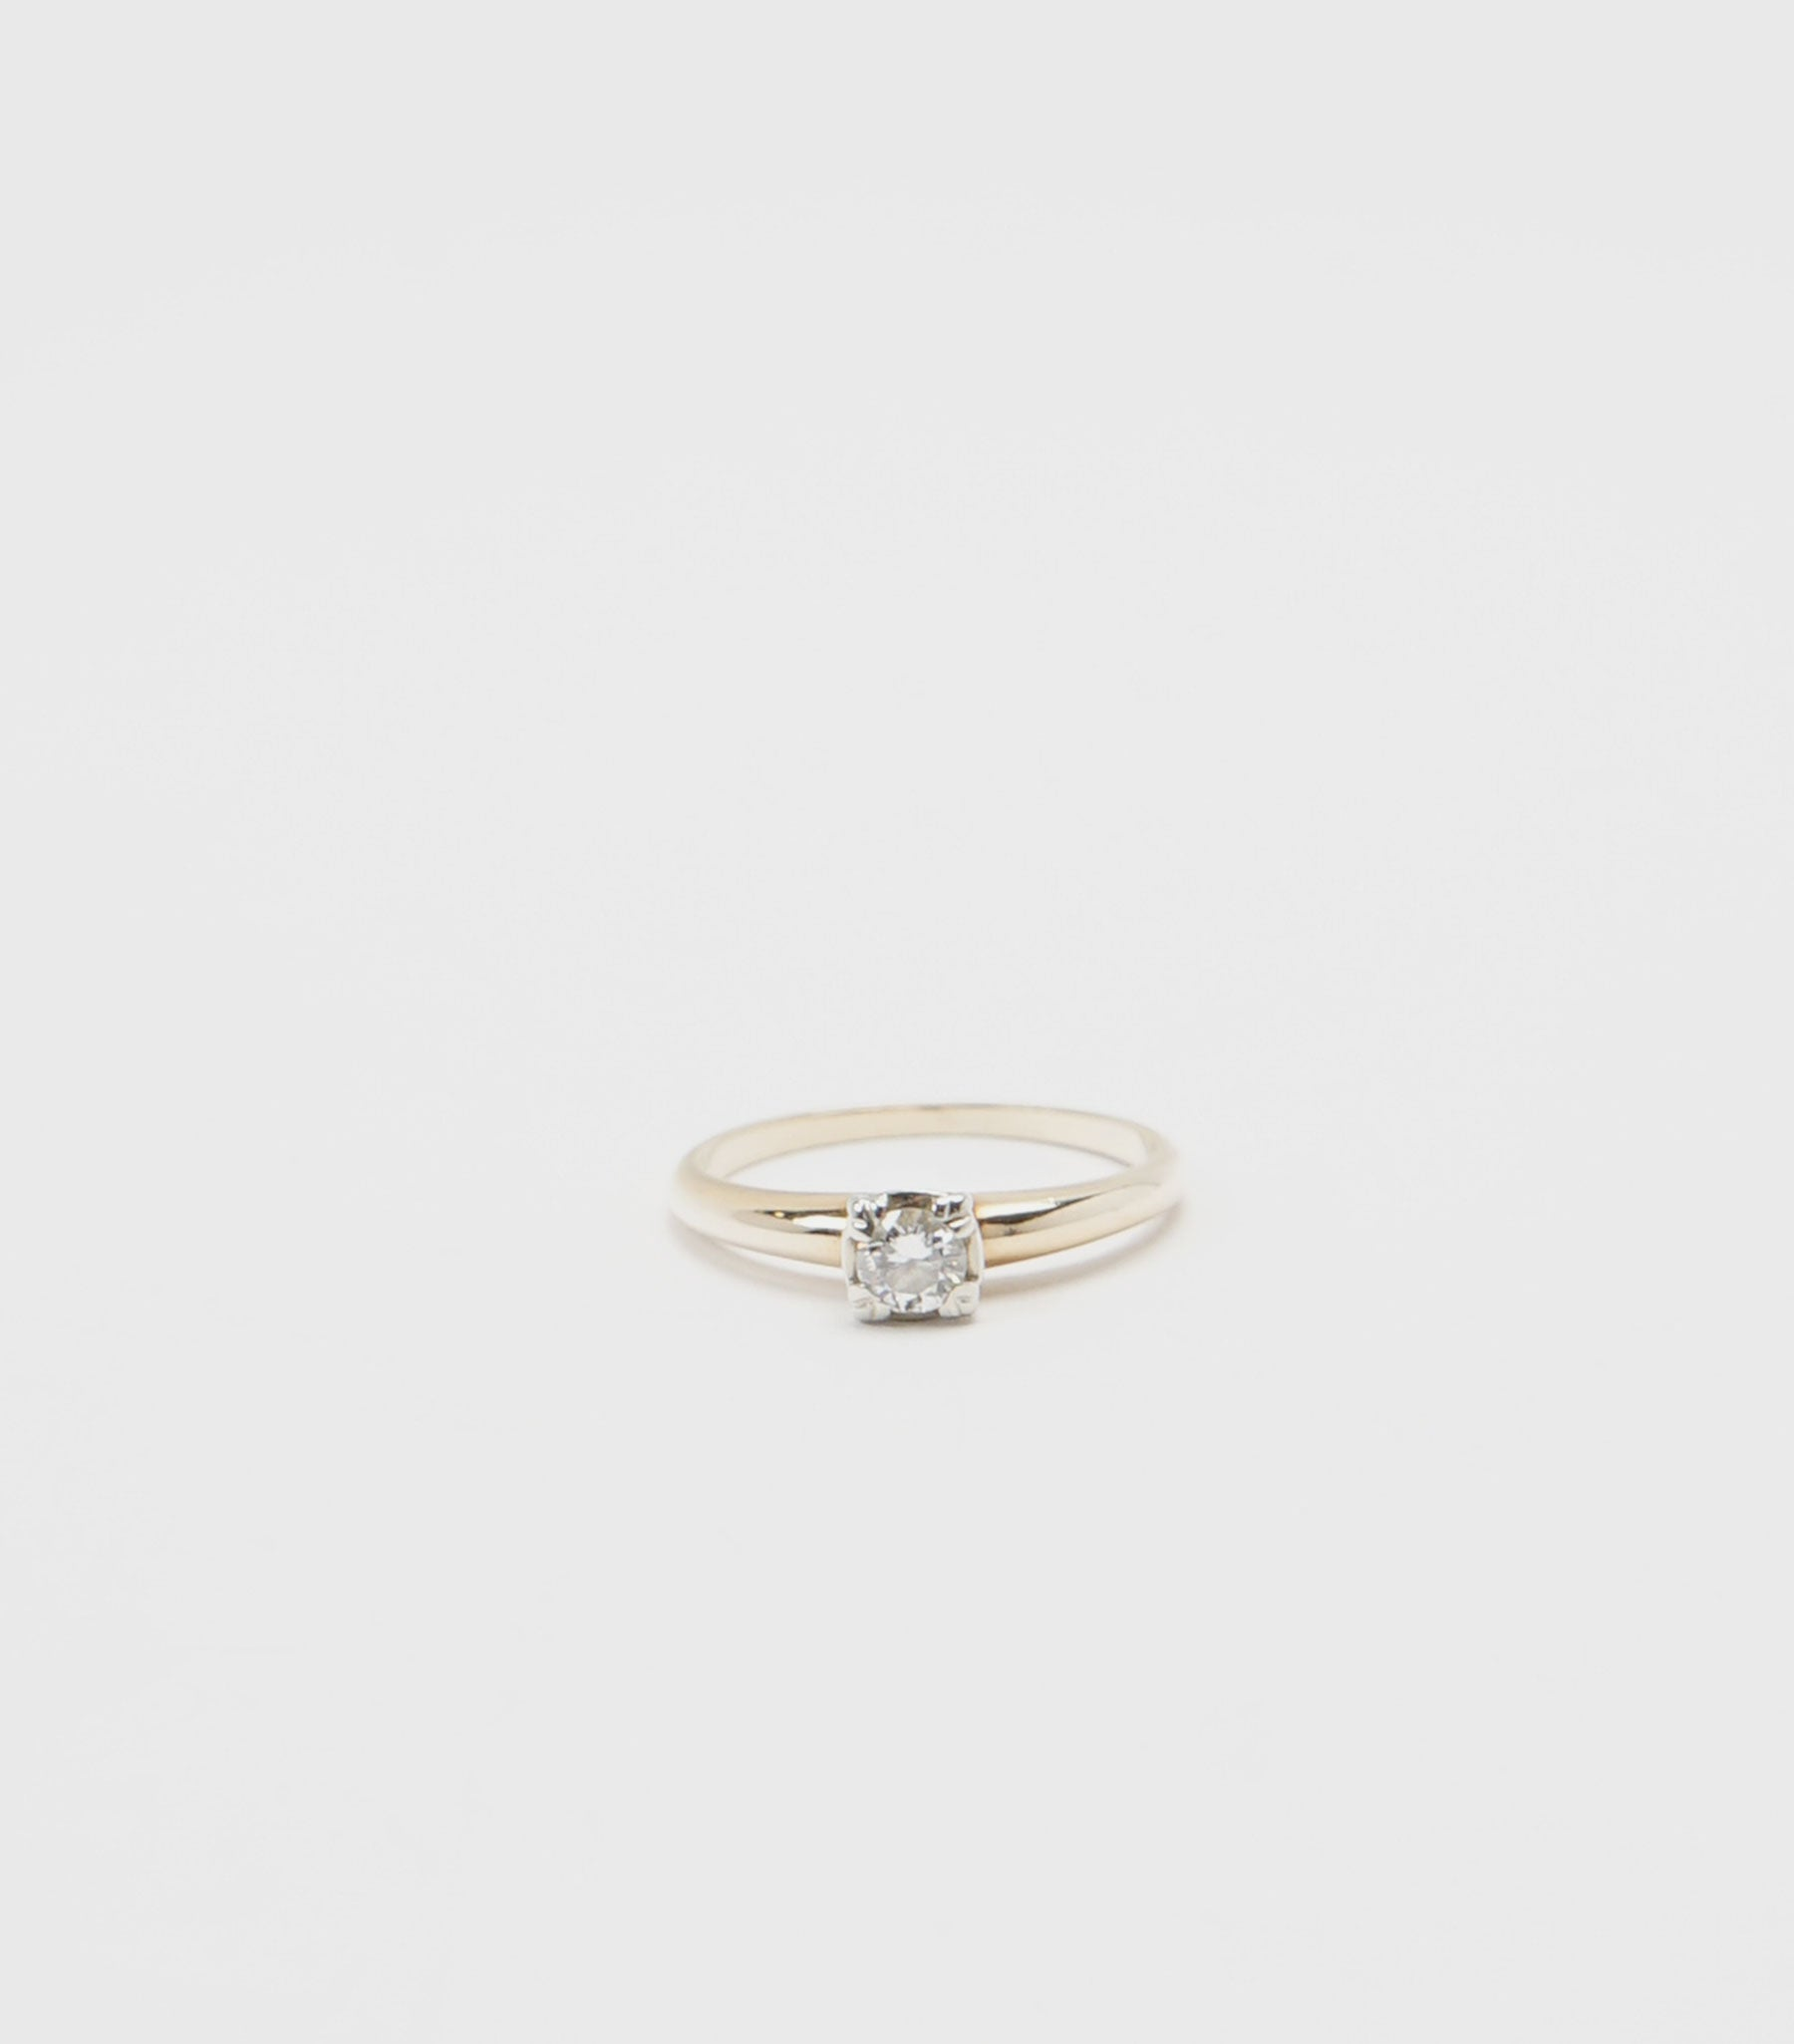 14K Gold x Diamond Ring